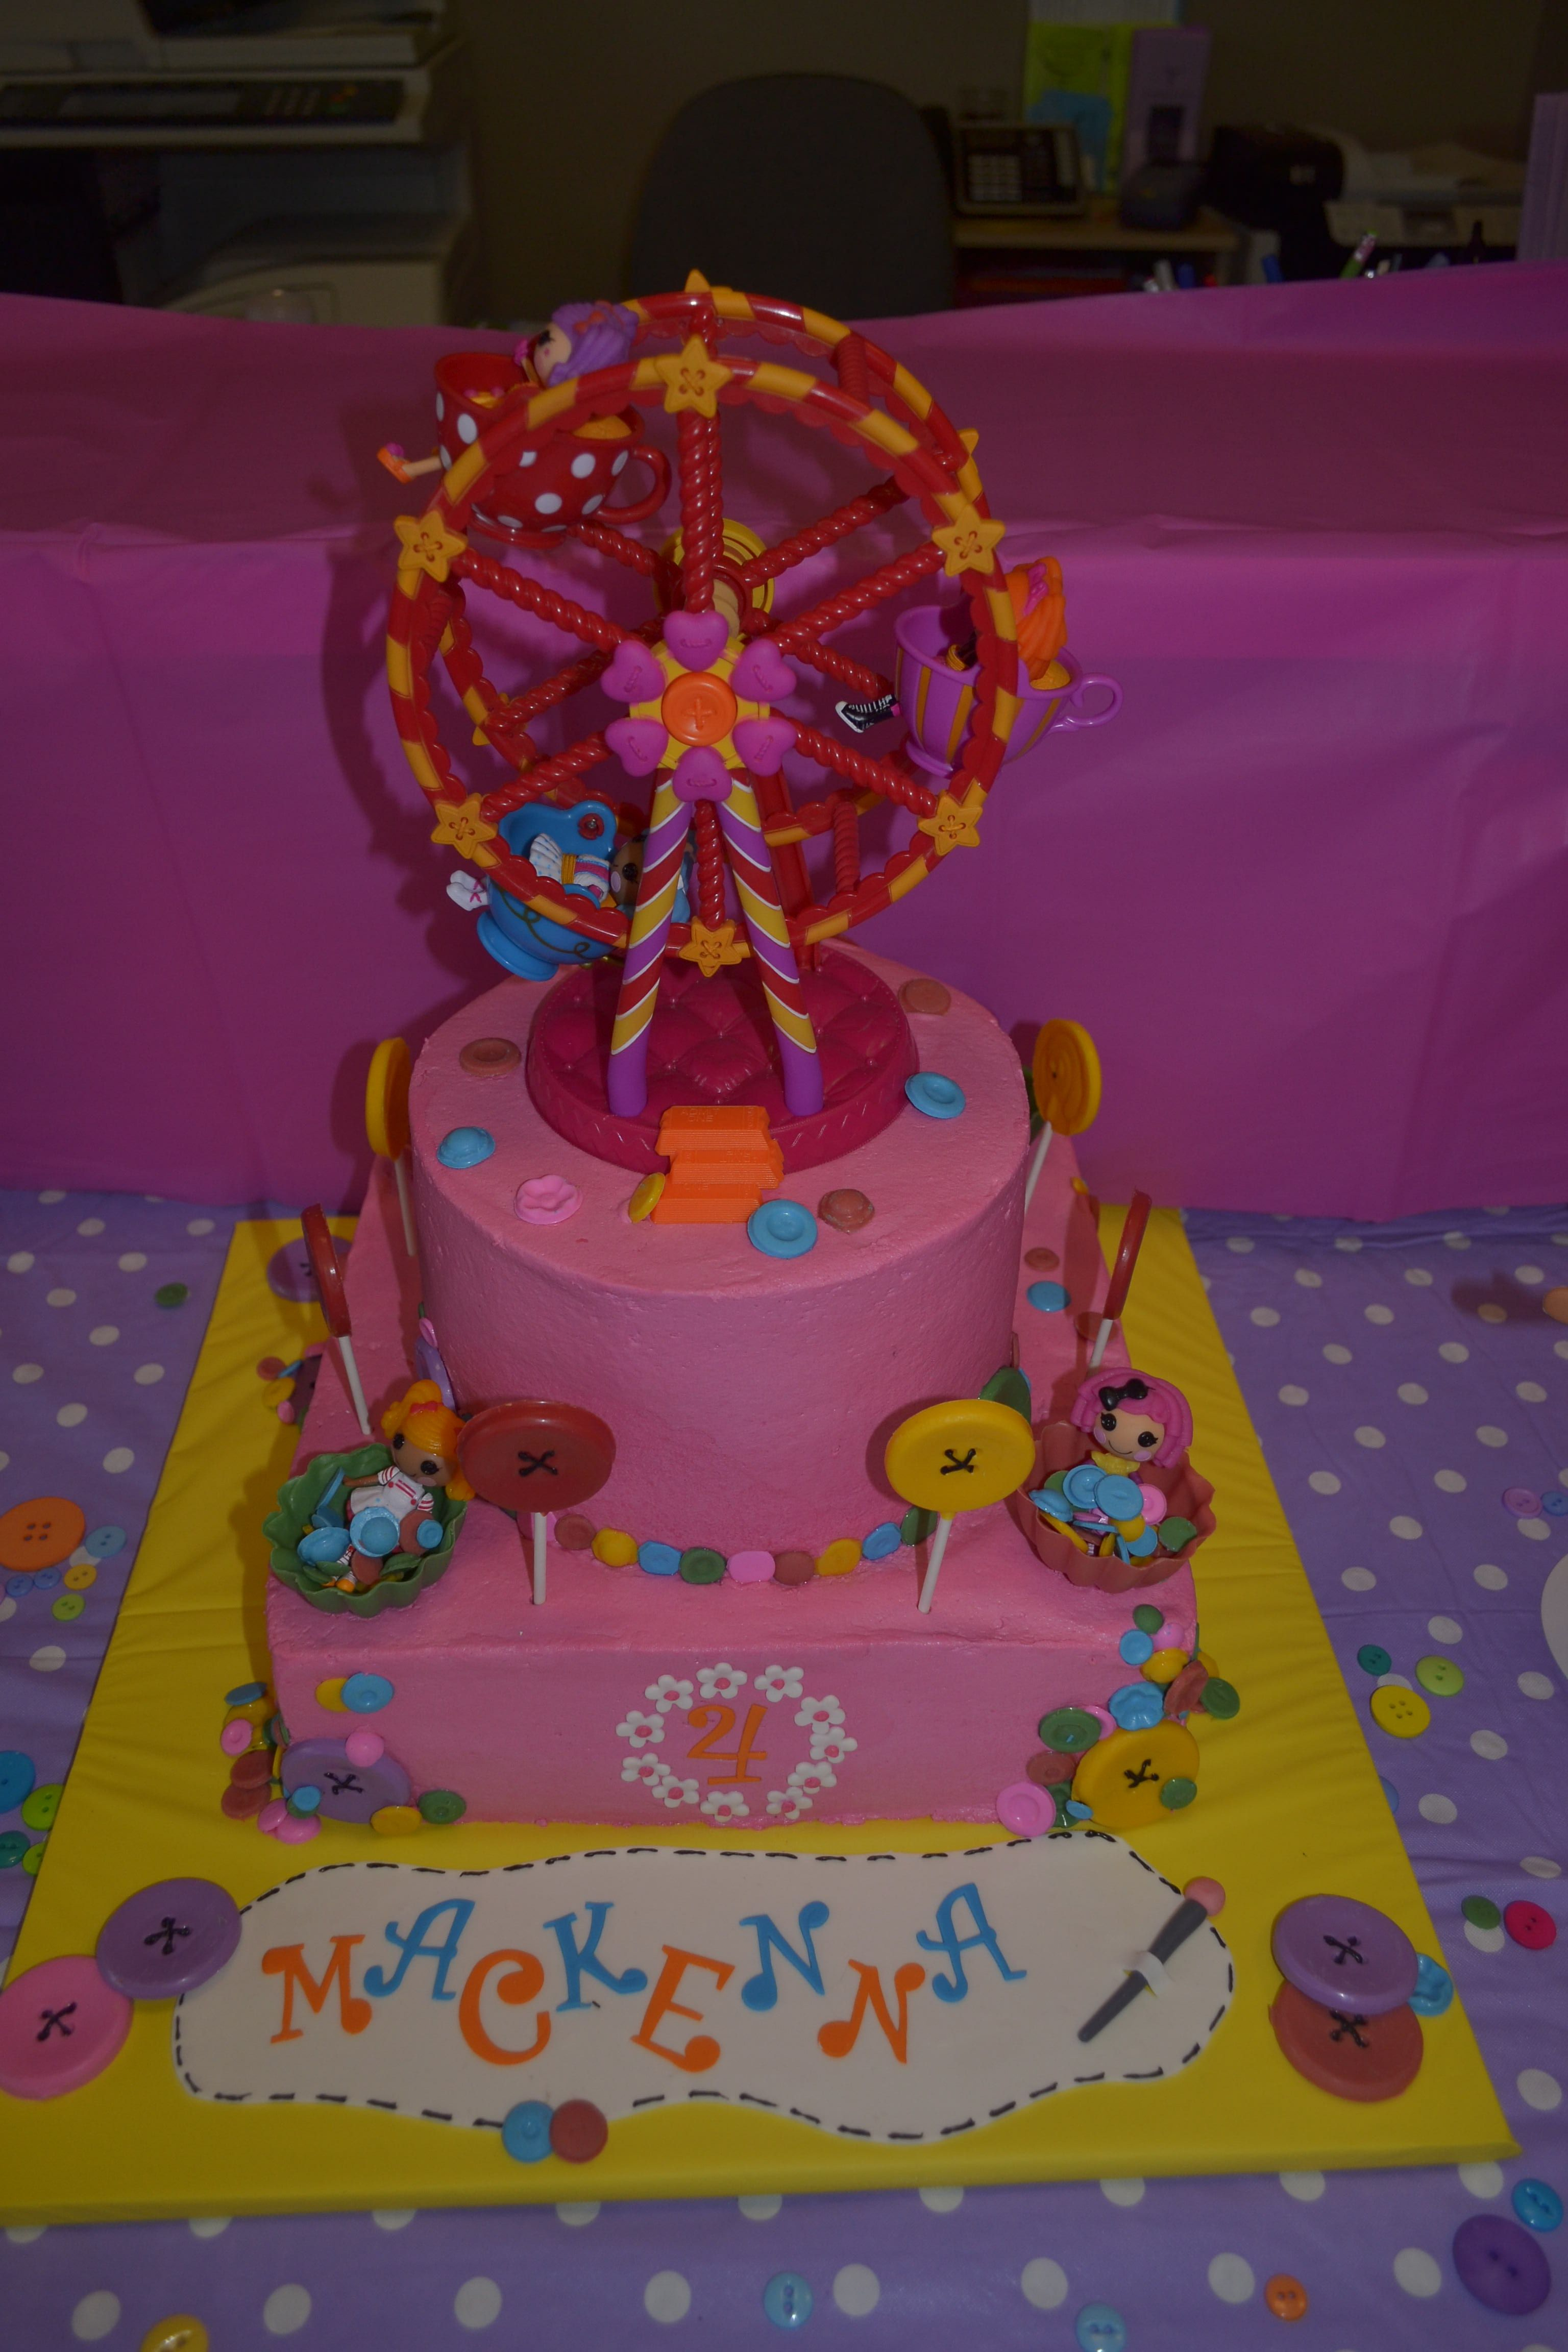 Great Lalaloopsy Cake With Ferris Wheel And Dolls Inside Of